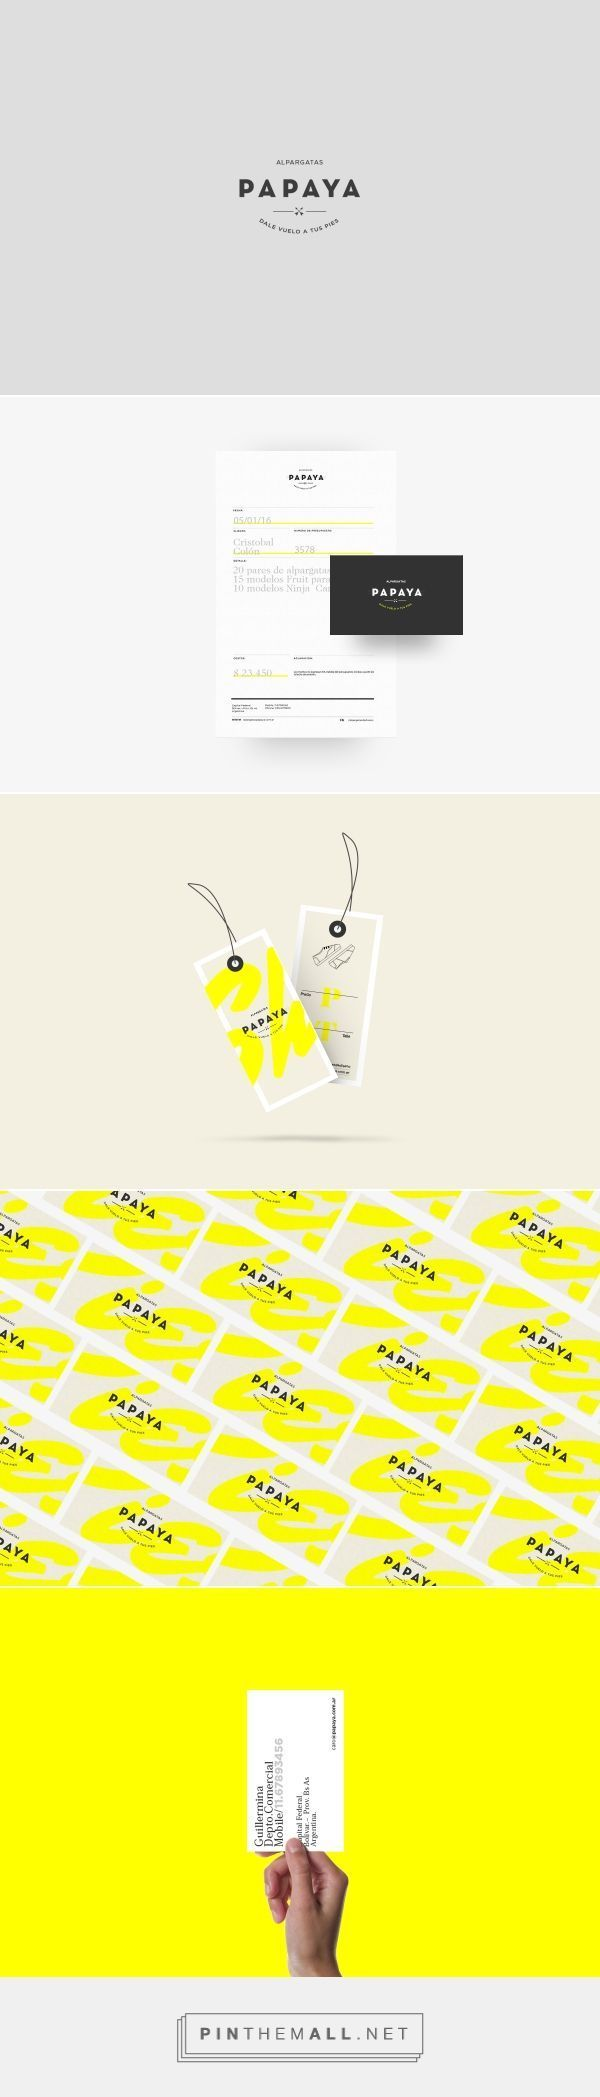 Papaya Shoe Company Branding by Buffalo Visual | Fivestar Branding Agency – Design and Branding Agency & Curated Inspiration Gallery                                   Uploaded by user